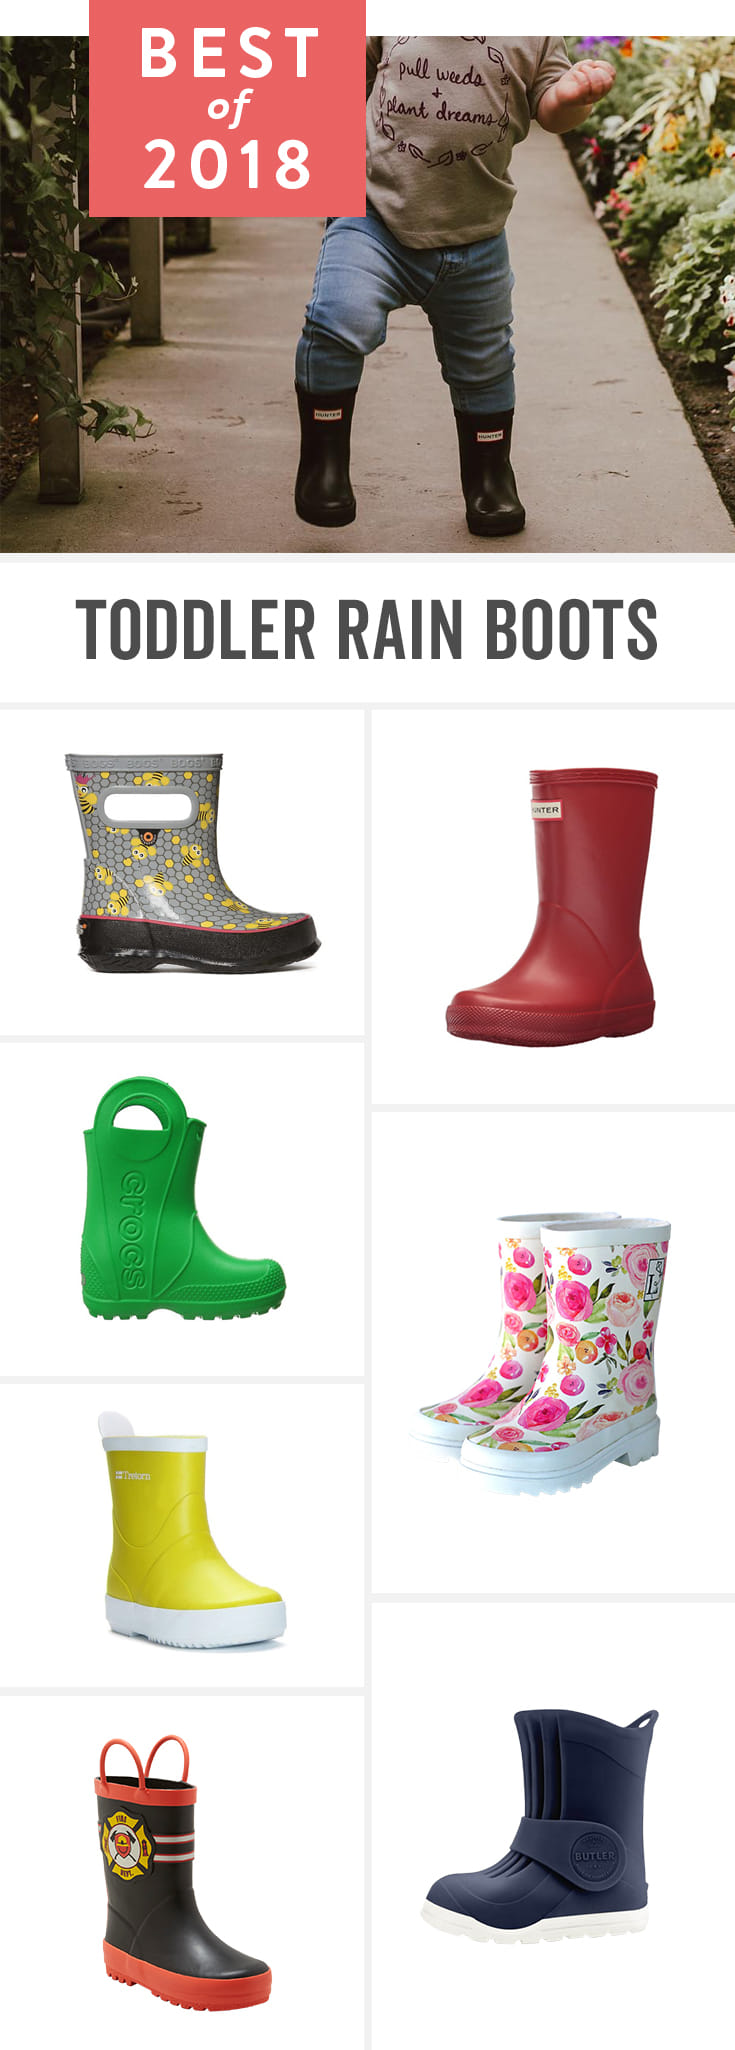 What little kid doesn't love splashing in rain puddles? With these toddler rain boots—from bargain to expensive—kids can have fun in the rain while still keeping their feet dry.